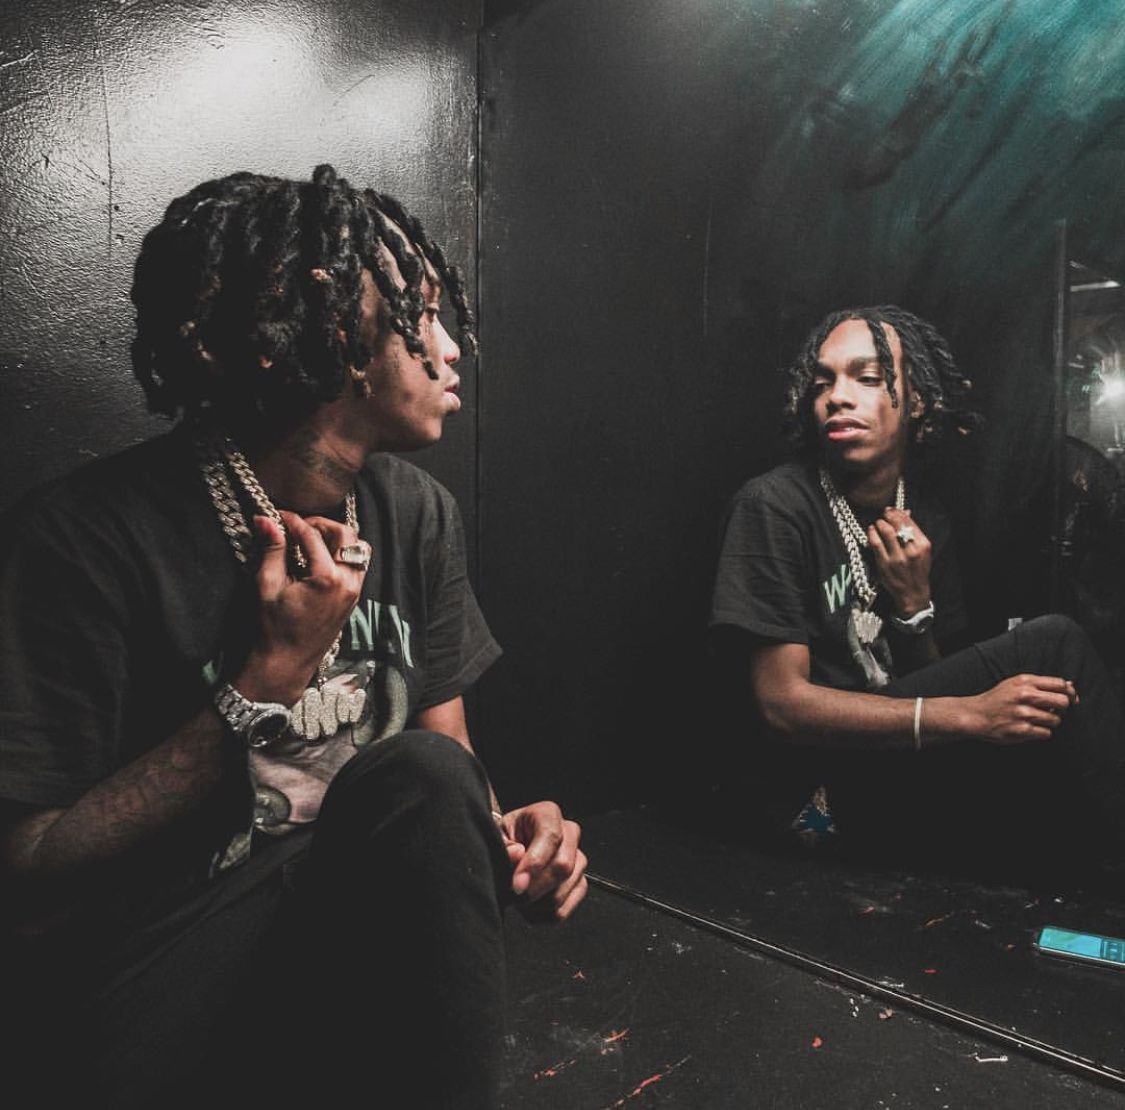 YNW Melly Aesthetic Computer Wallpapers - Wallpaper Cave